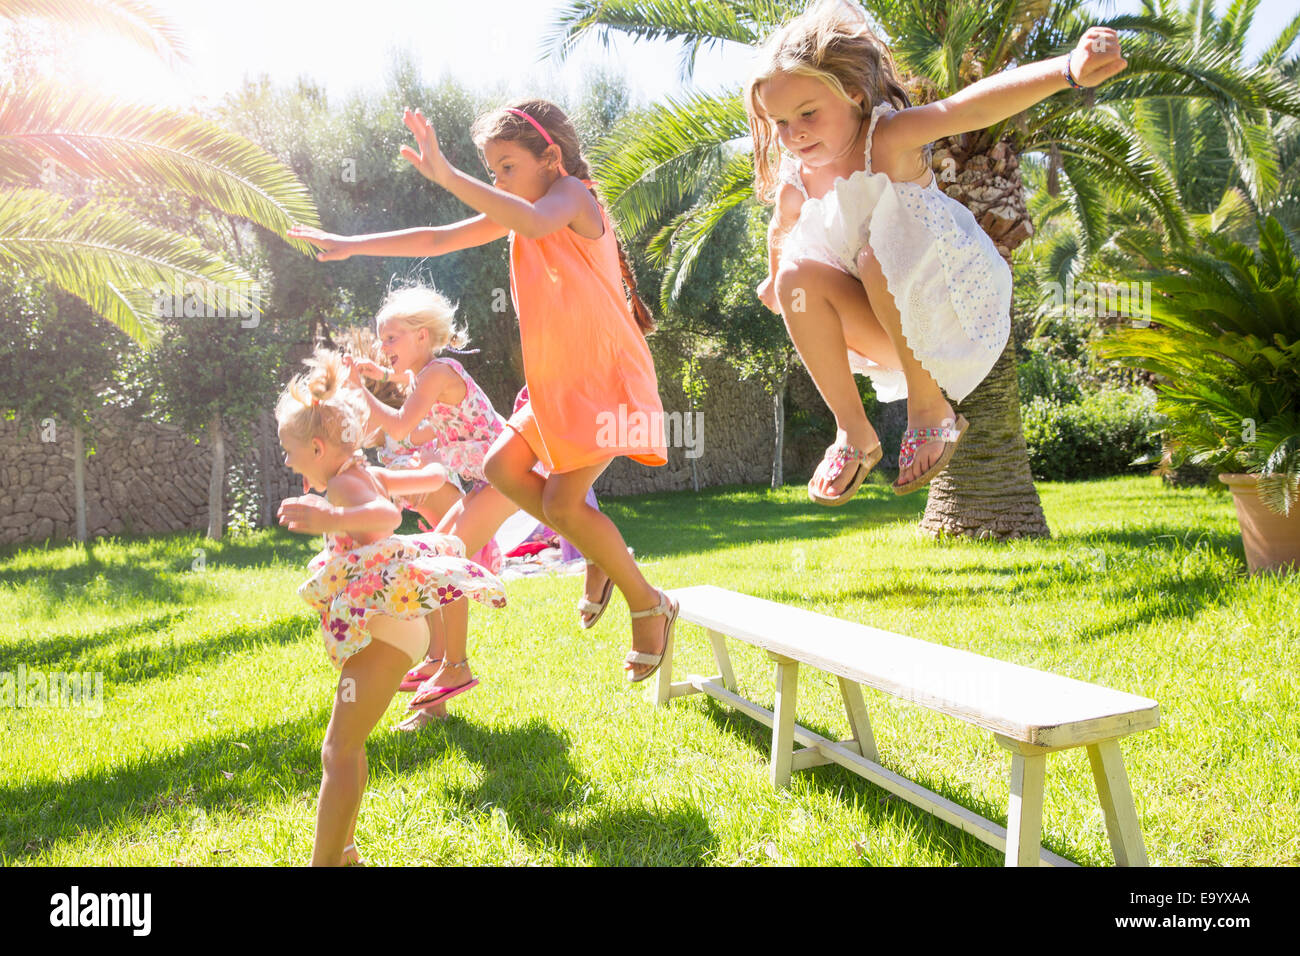 Five energetic girls jumping from garden bench Stock Photo